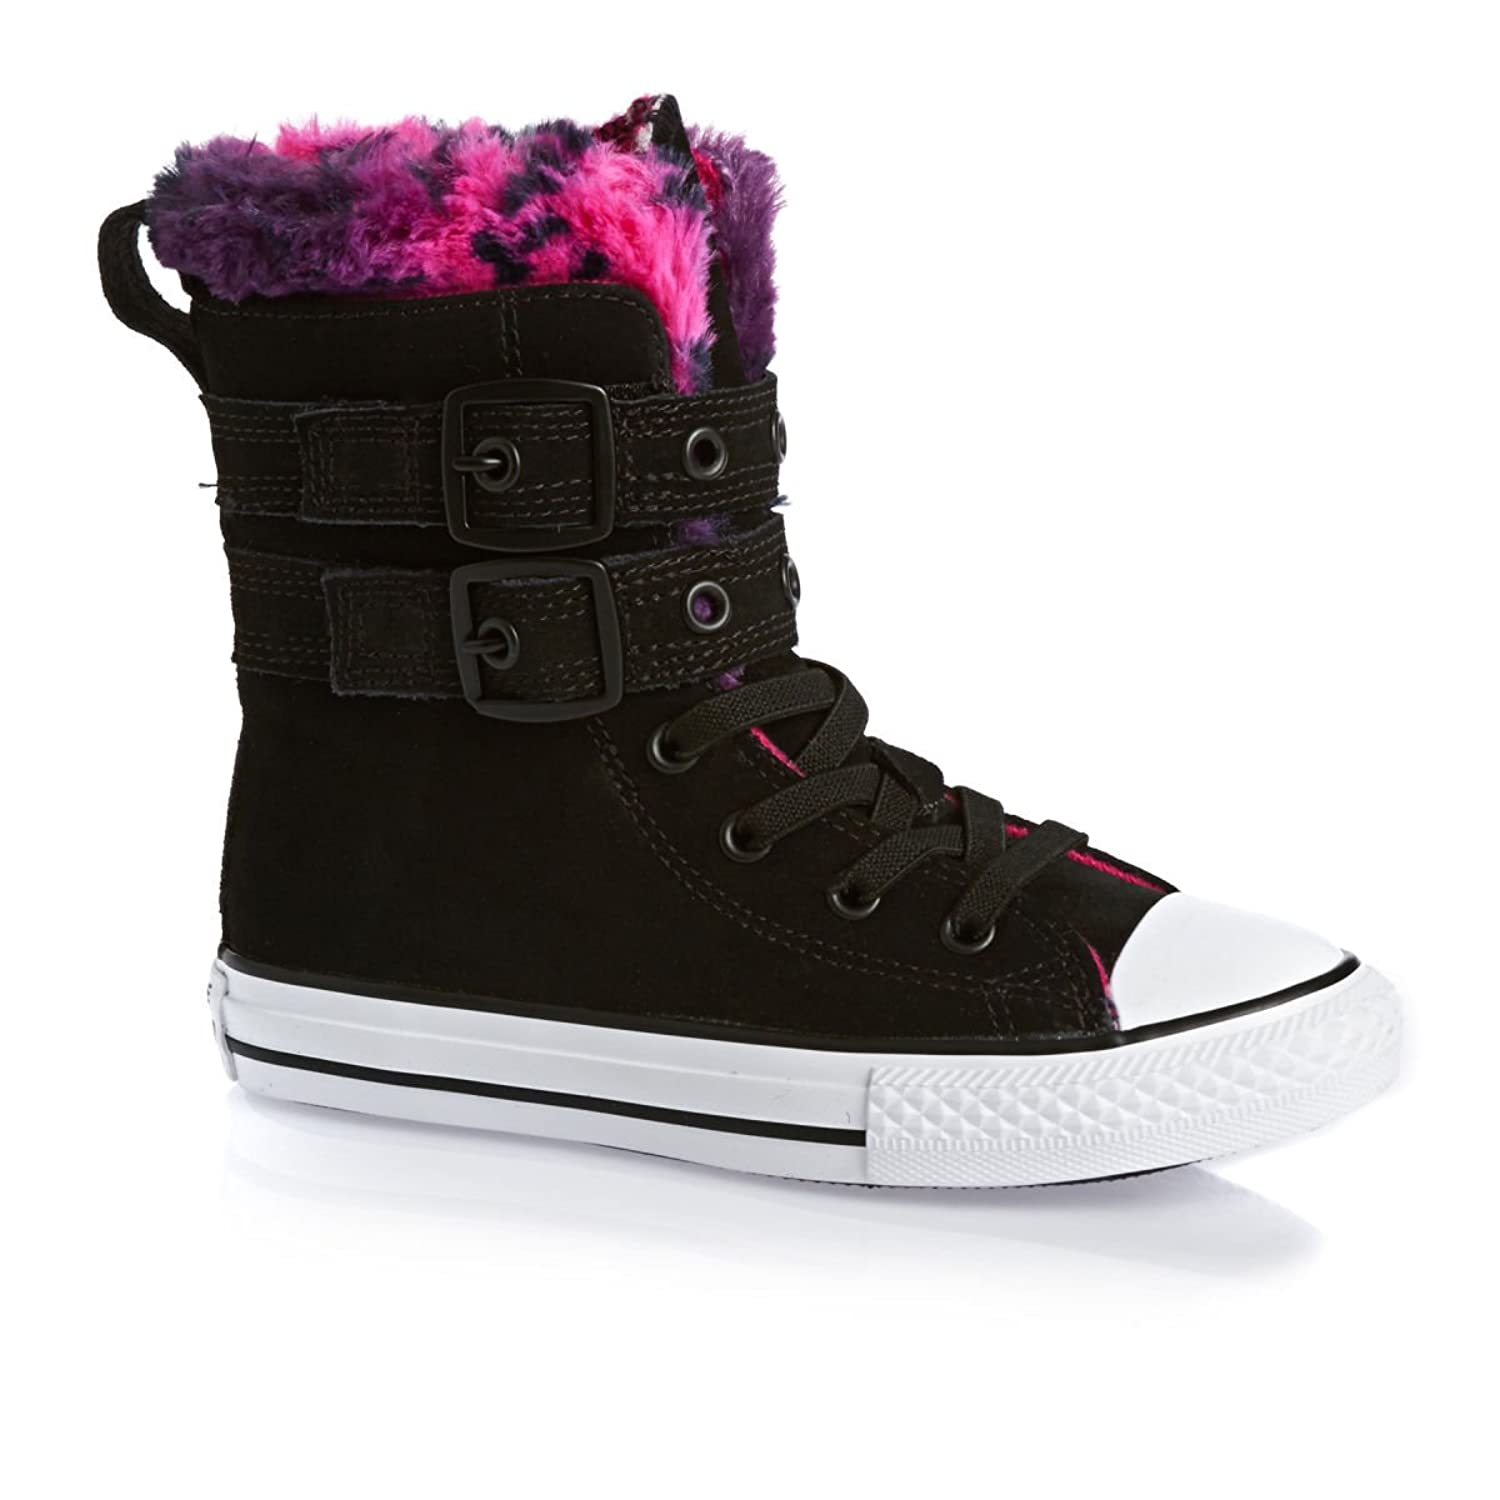 converse shoes high tops for girls. amazon.com | converse chuck taylor glendale hi youth us 11 black sneakers shoes high tops for girls